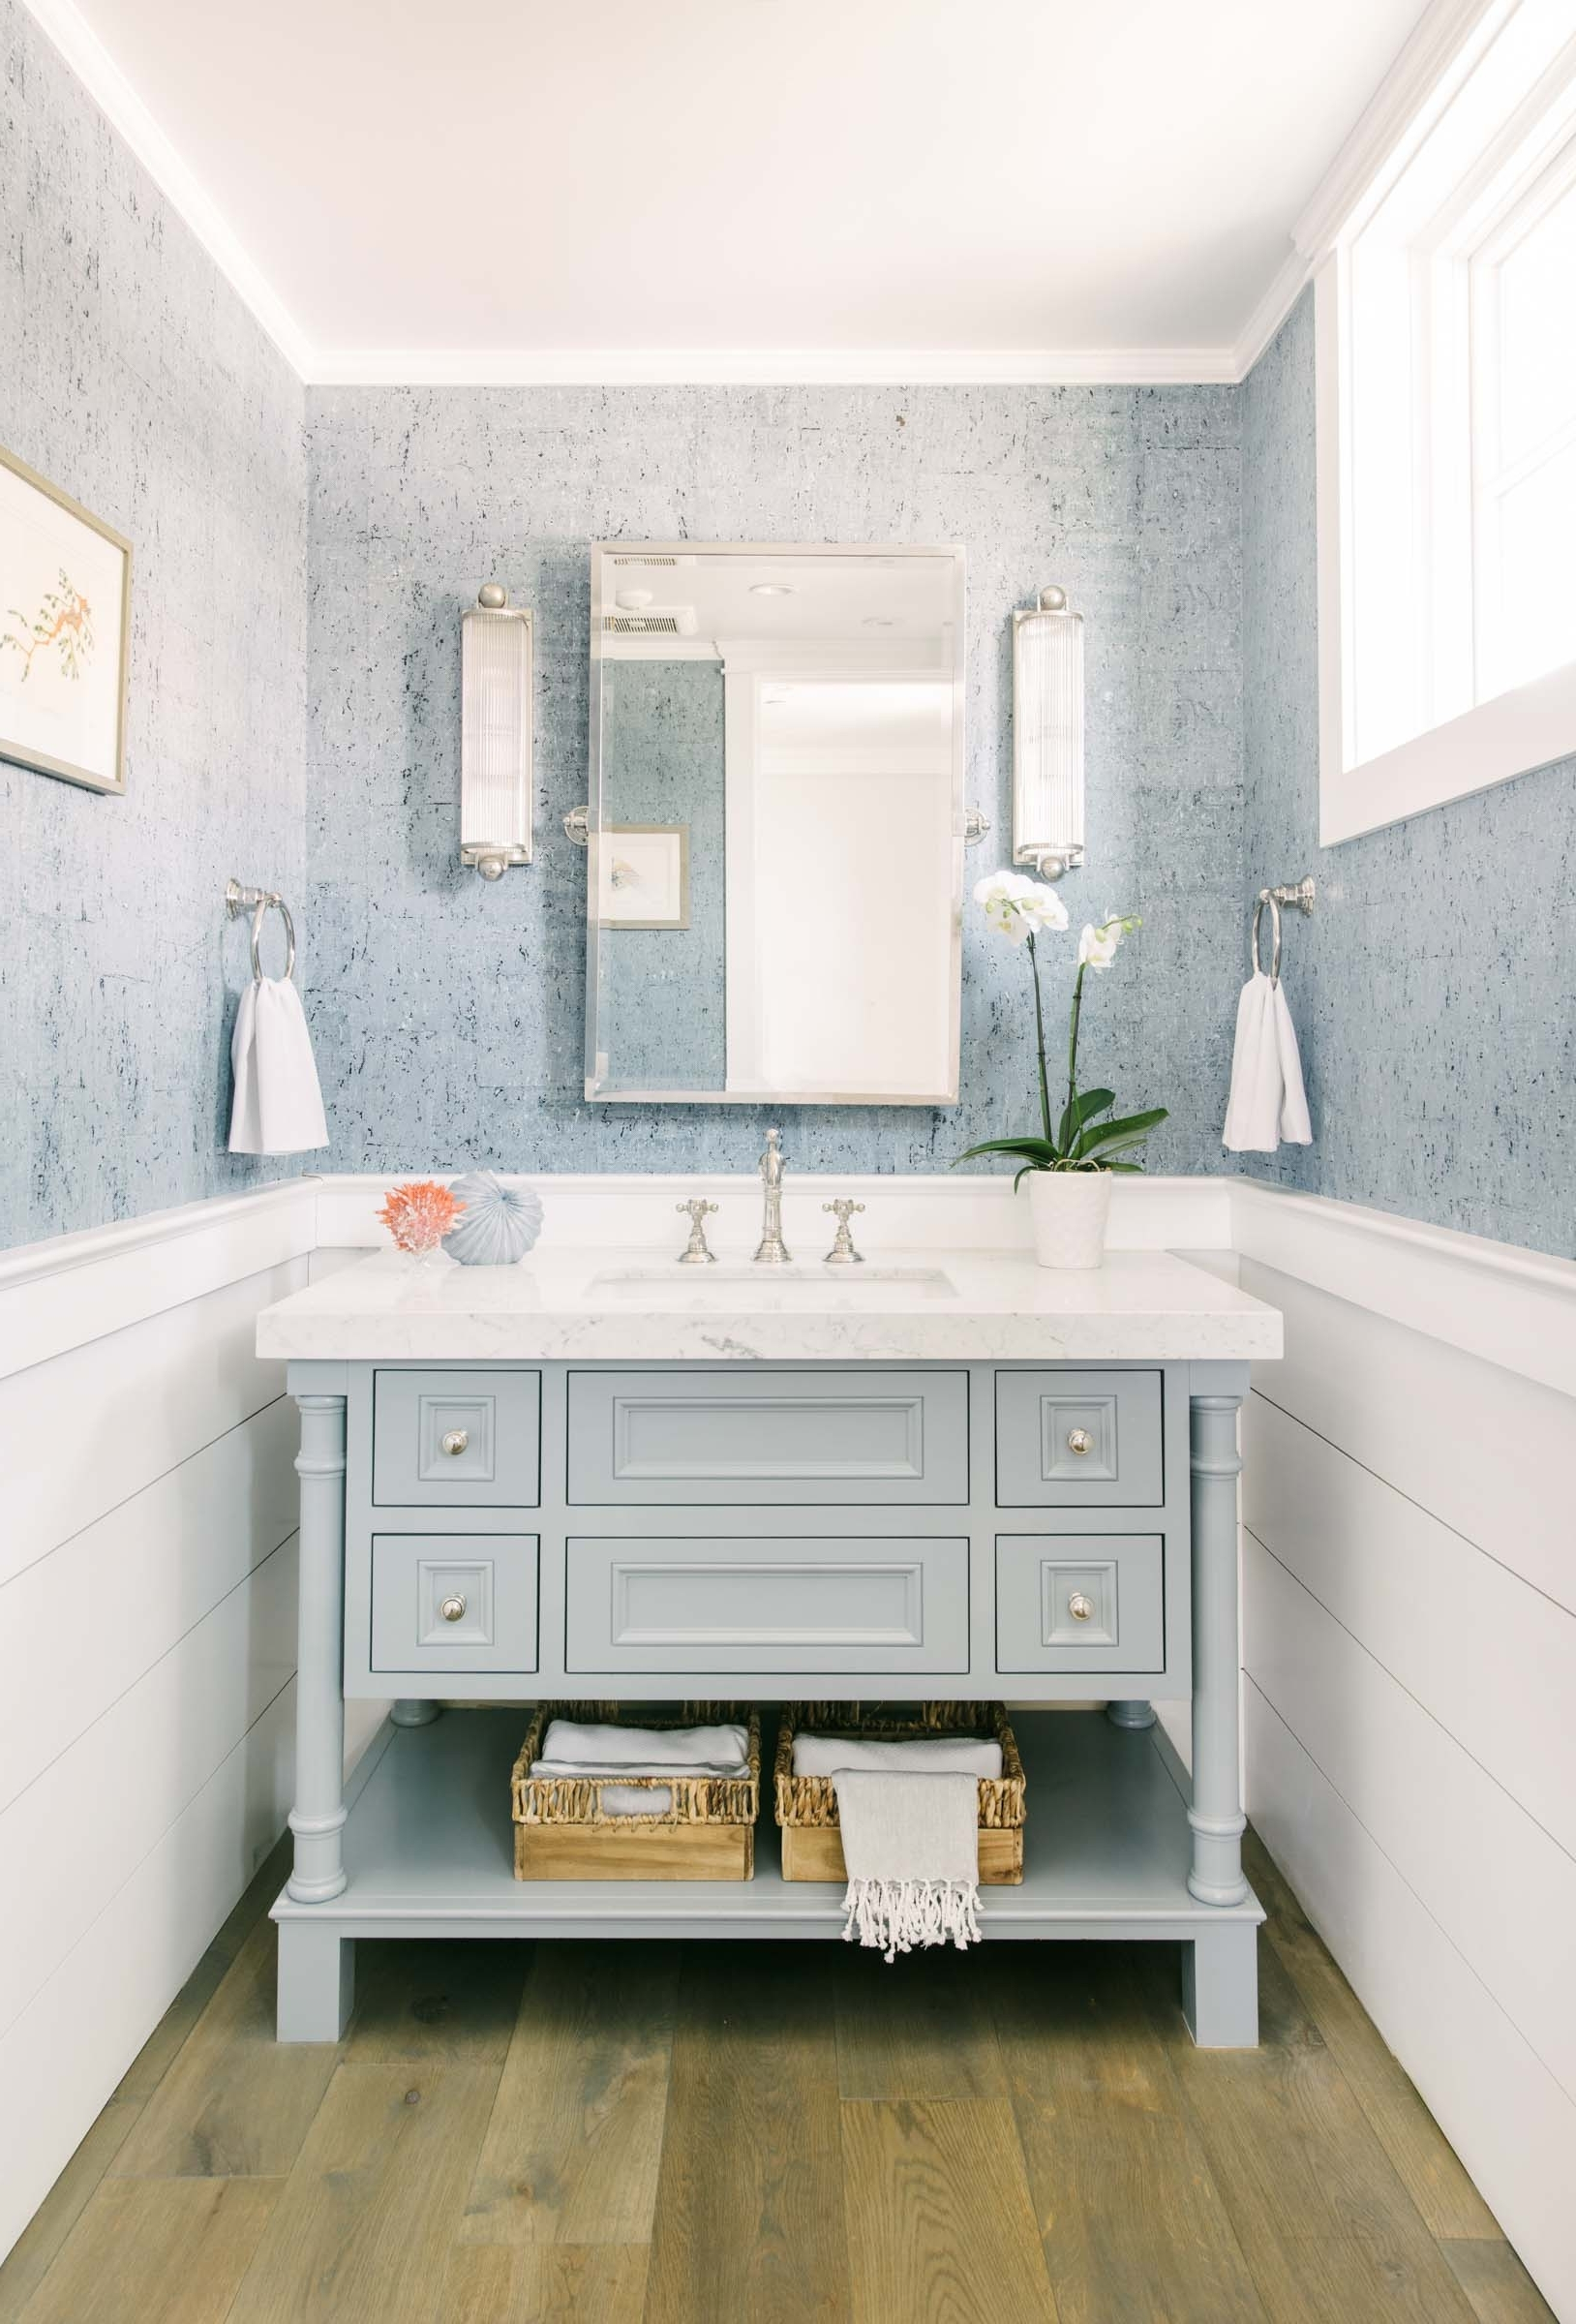 75 Beautiful Wainscoting Bathroom Pictures & Ideas January Wainscoting Bathroom Pictures